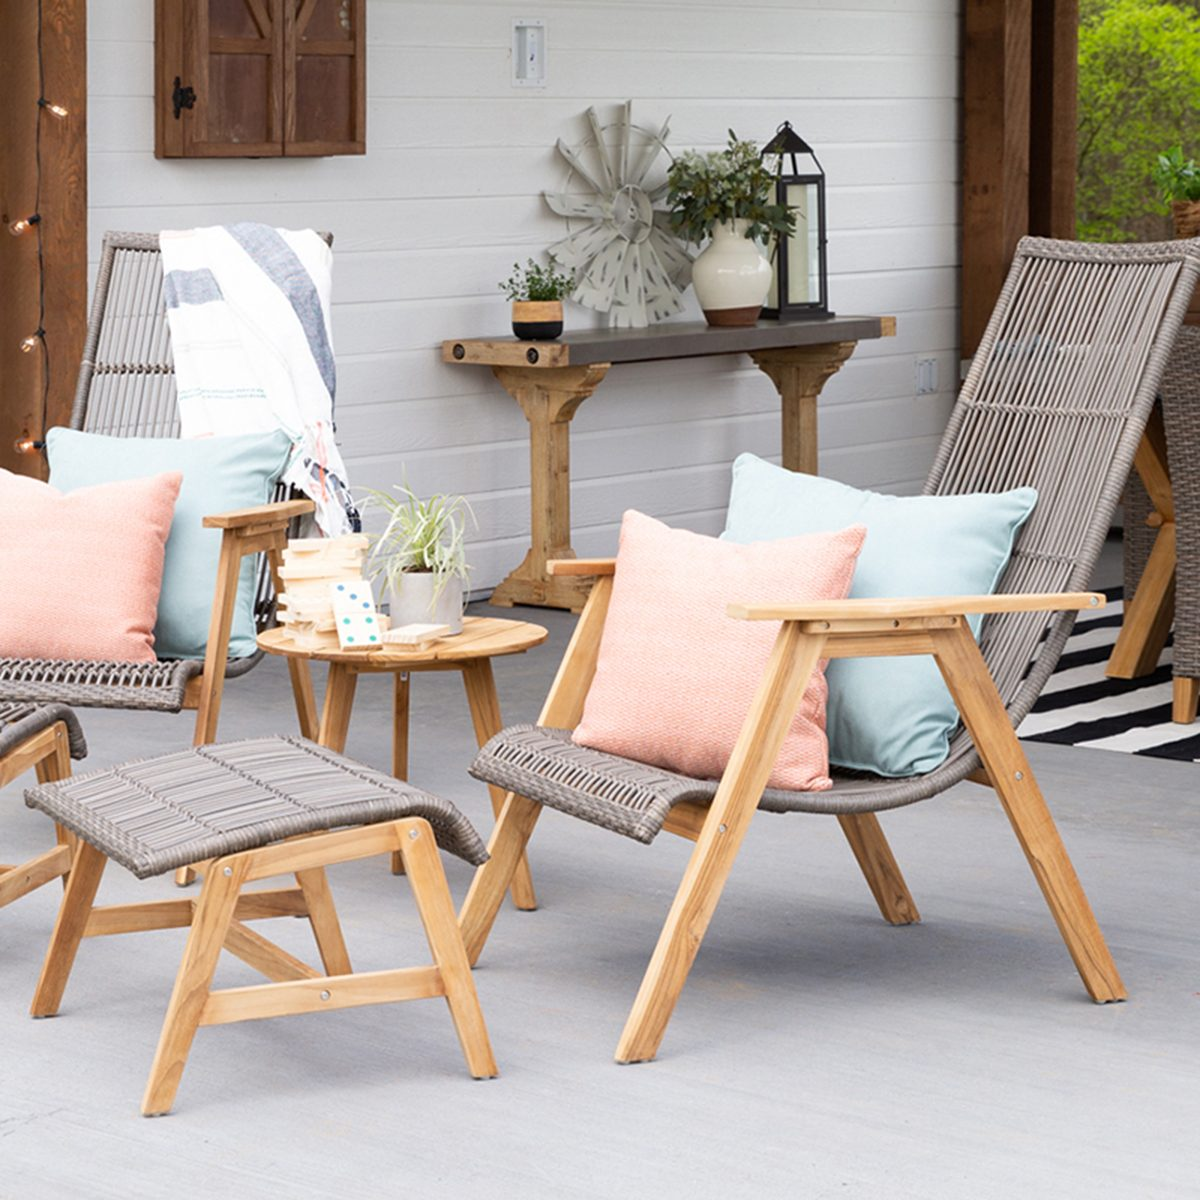 The Best Patio Furniture For Your Backyard Taste Of Home